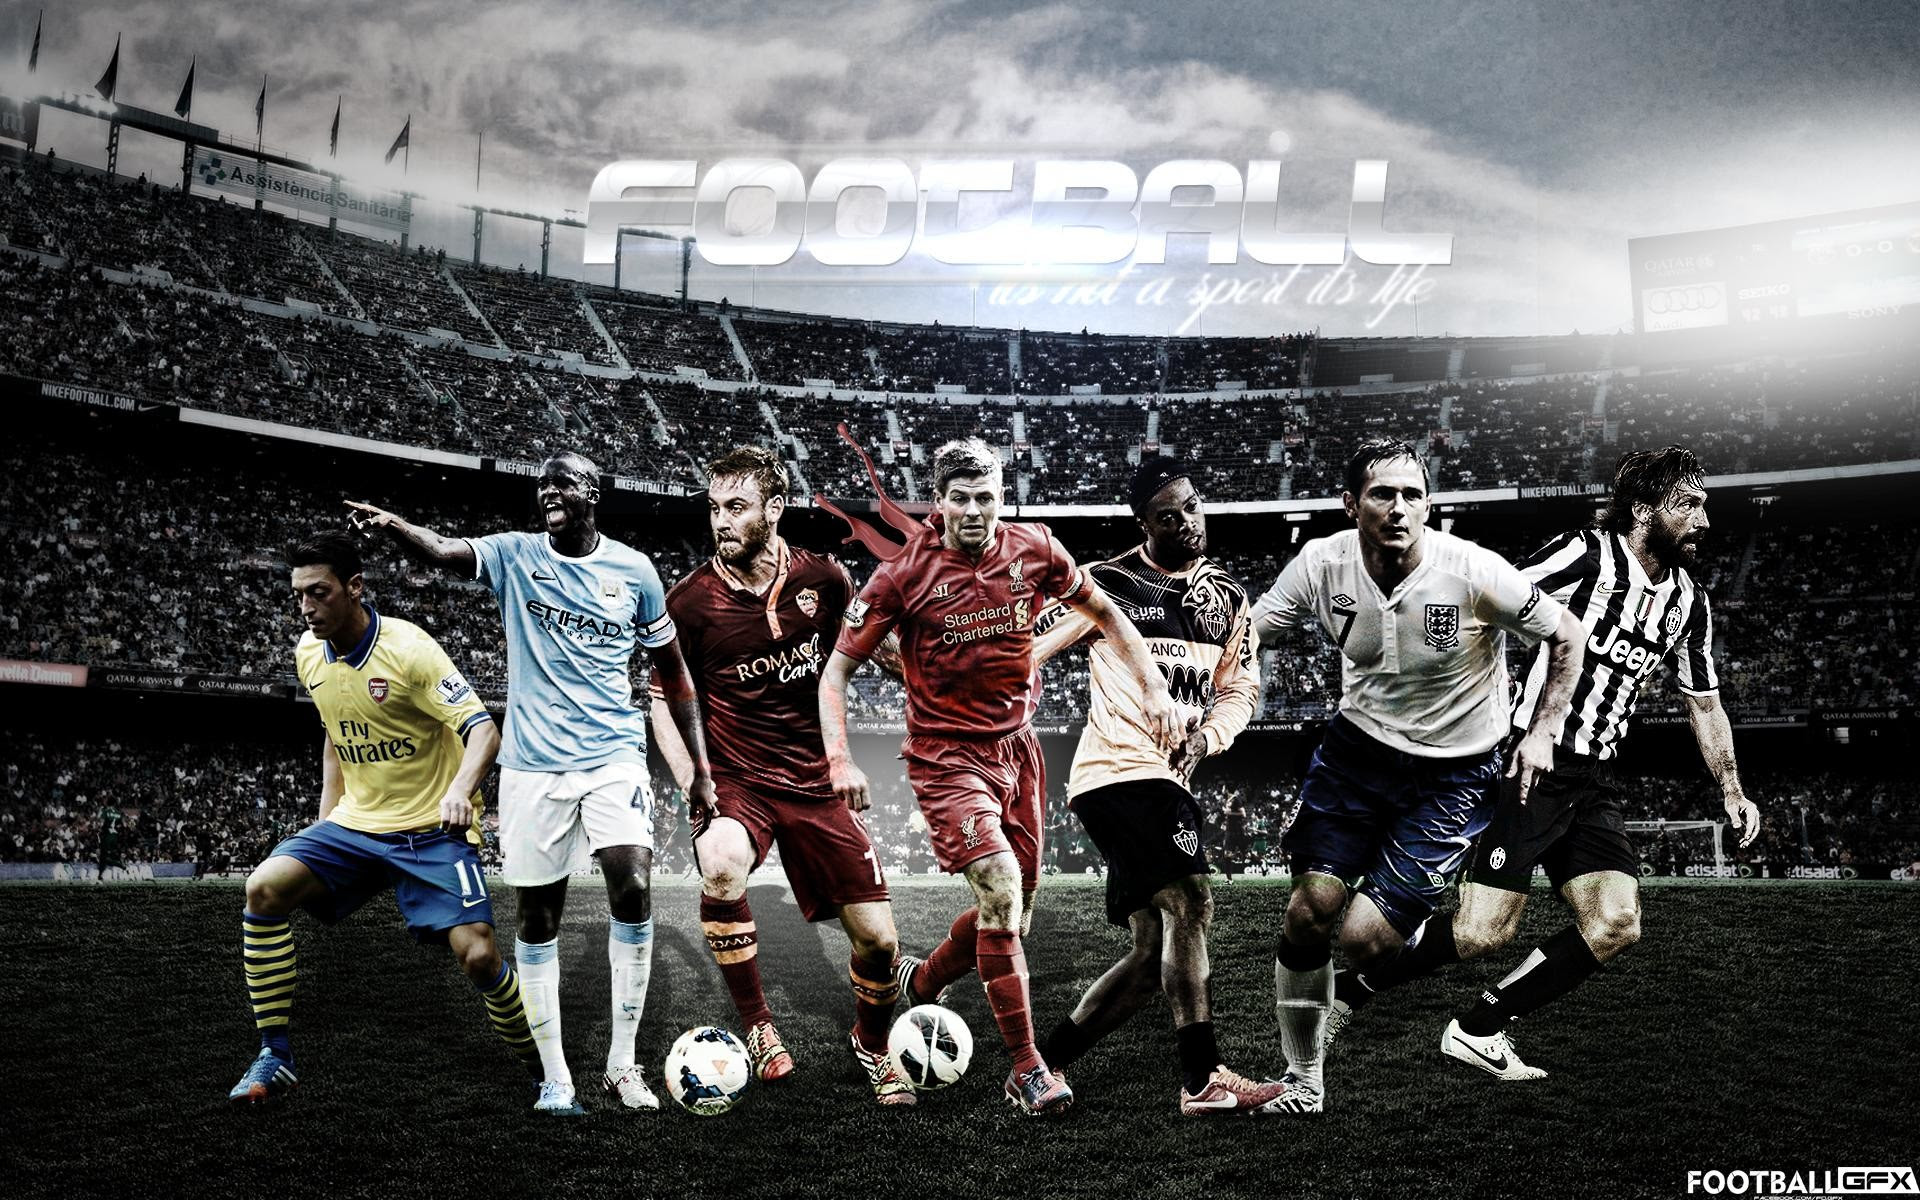 Funny Football Wallpapers 56 Images